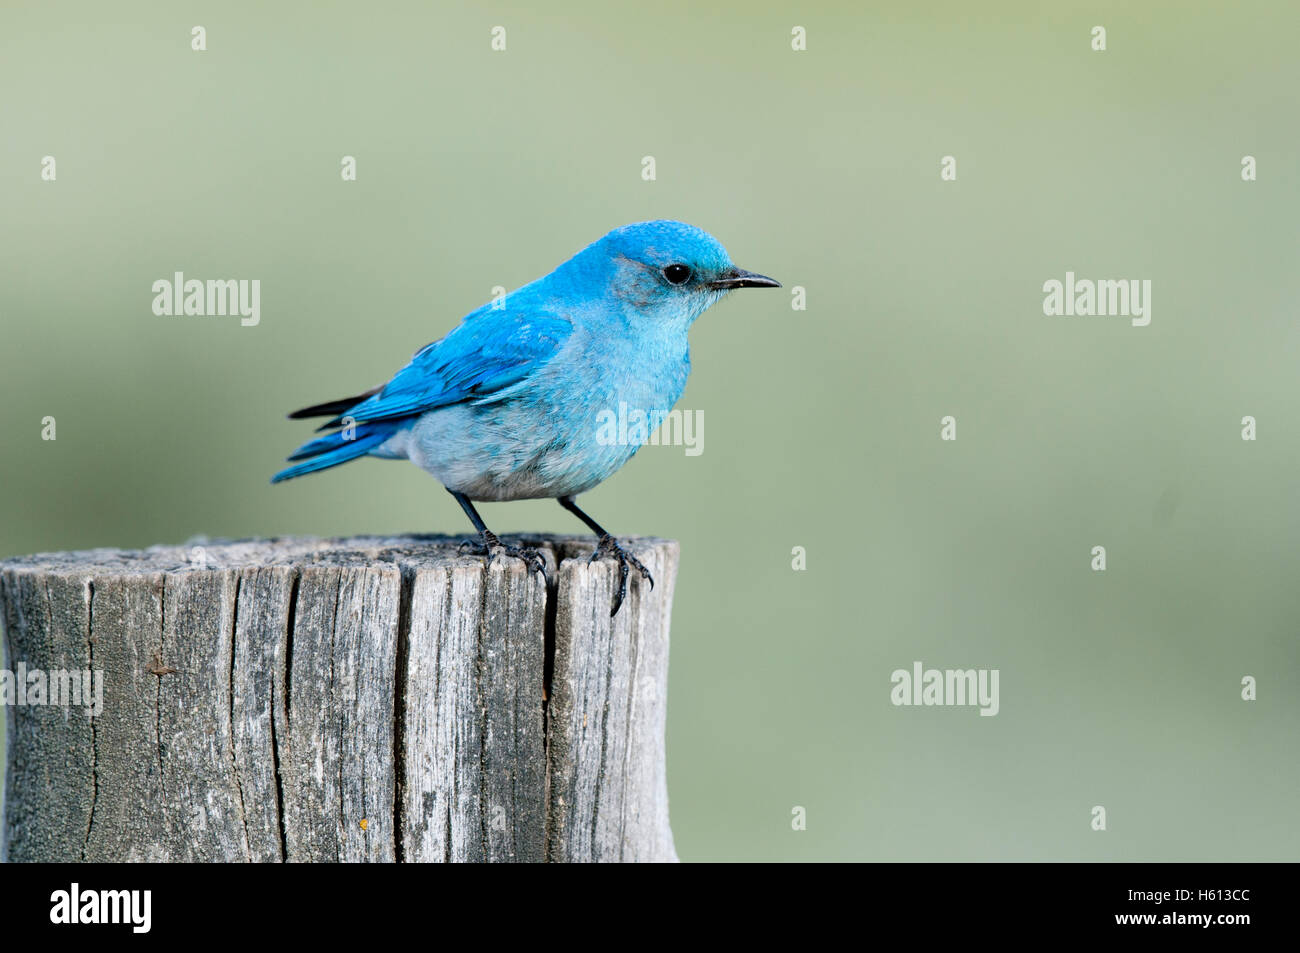 Male mountain bluebird (Sialia currucoides) perched on fencepost, Elmore County, Idaho - Stock Image